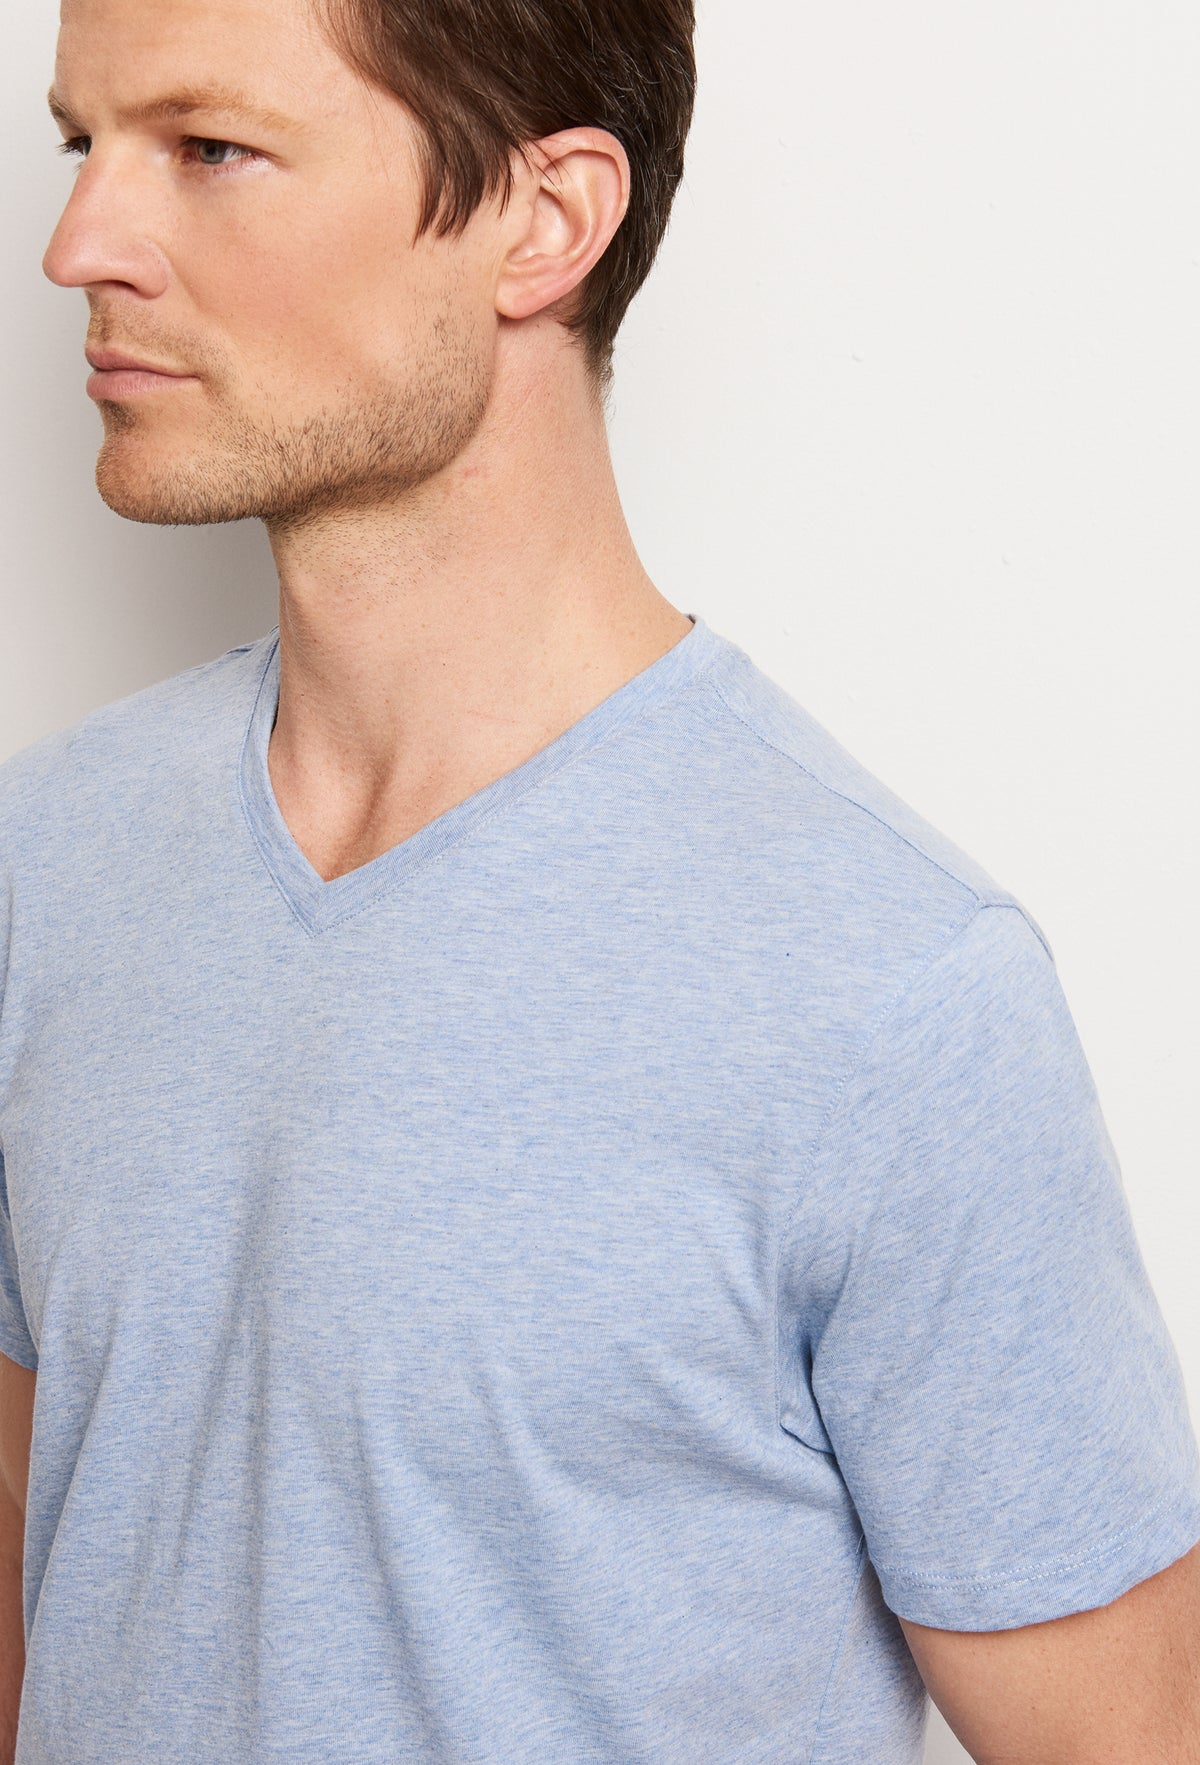 ZACHARY-PRELL-Mercer V-T-shirtsModern-Menswear-New-Dress-Code